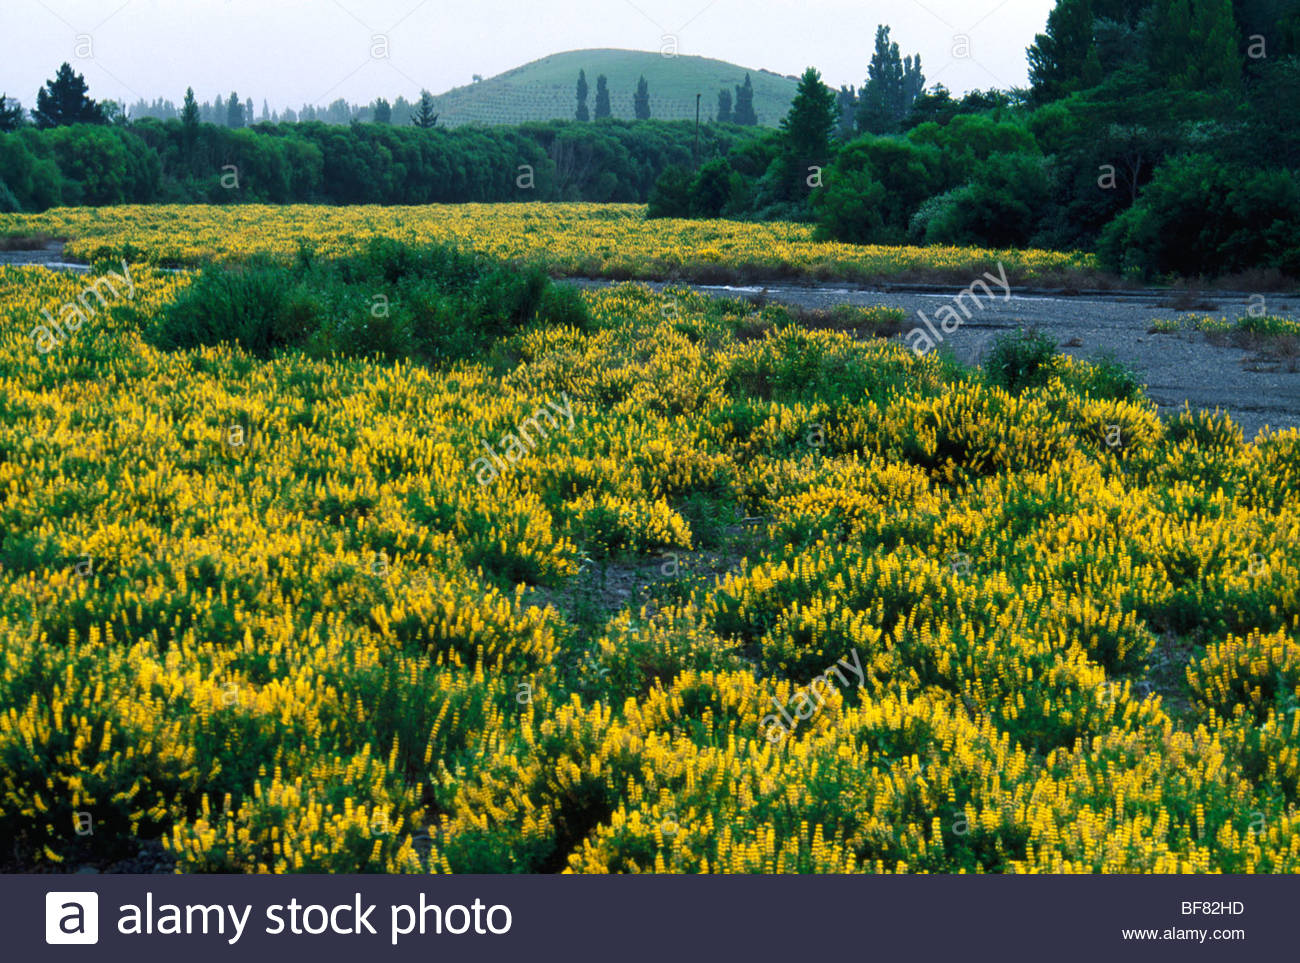 Non-native yellow lupine invading river bed near Christchurch, New Zealand Stock Photo